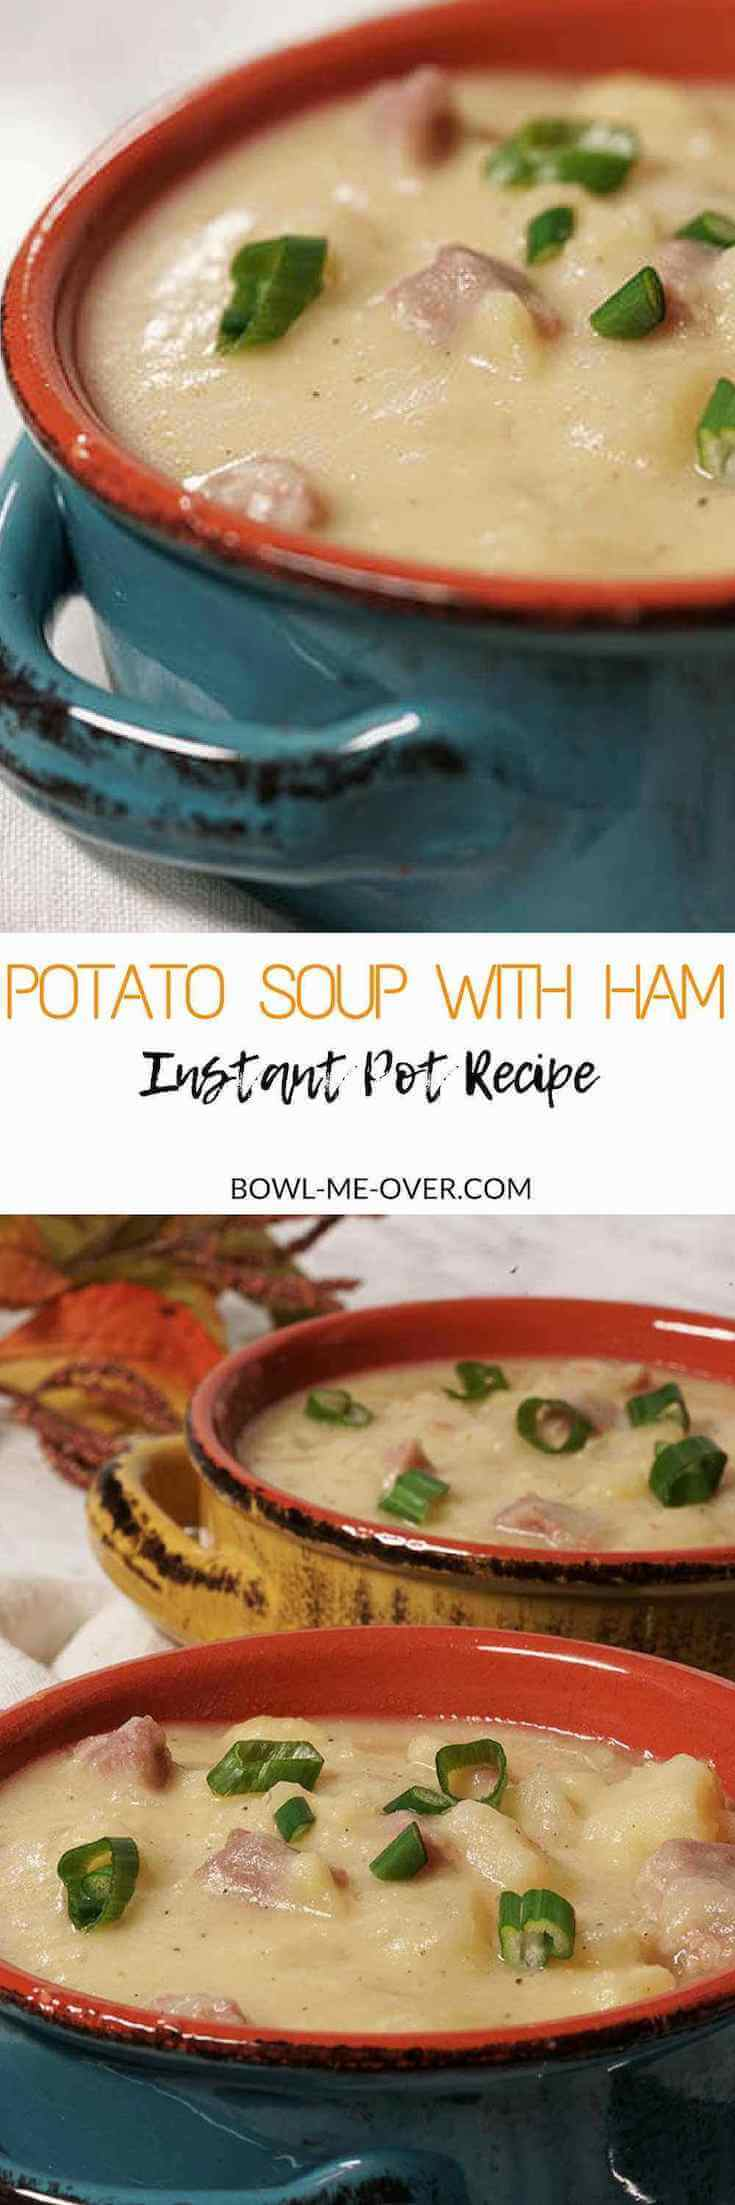 Two bowls of rich, hearty potato soup with ham.